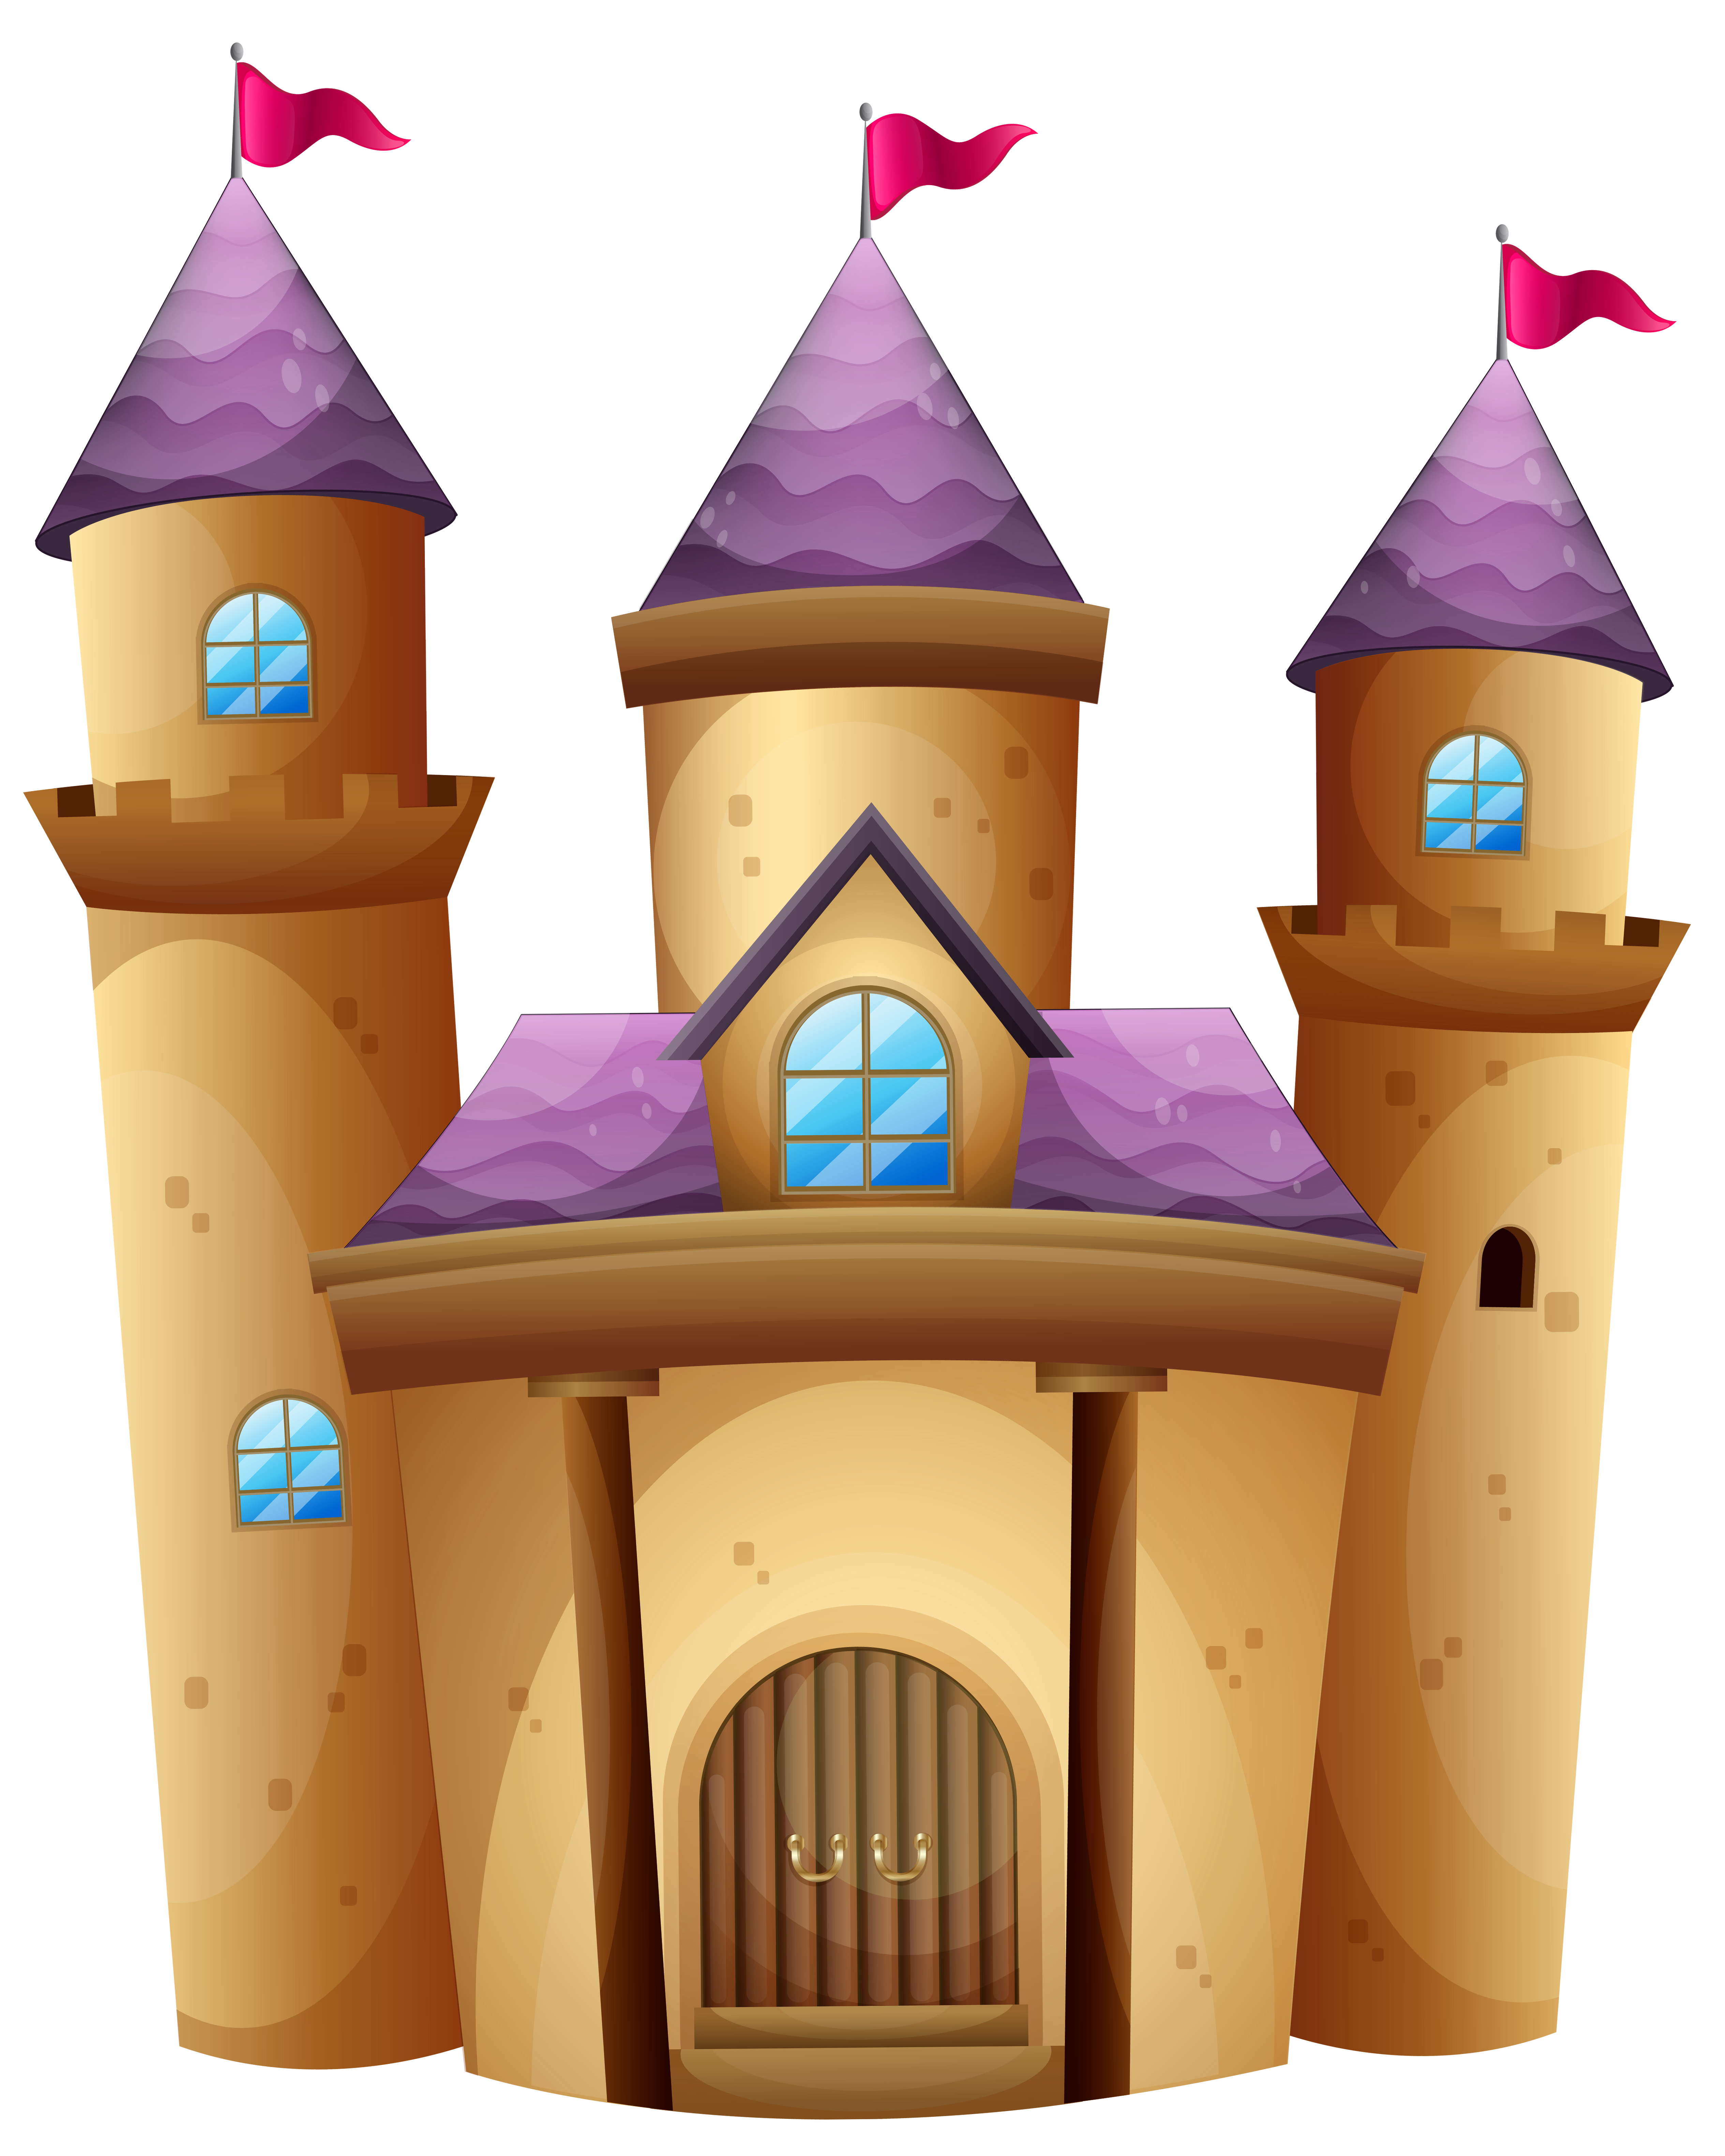 5059x6323 Collection Of Castle Clipart High Quality, Free Cliparts